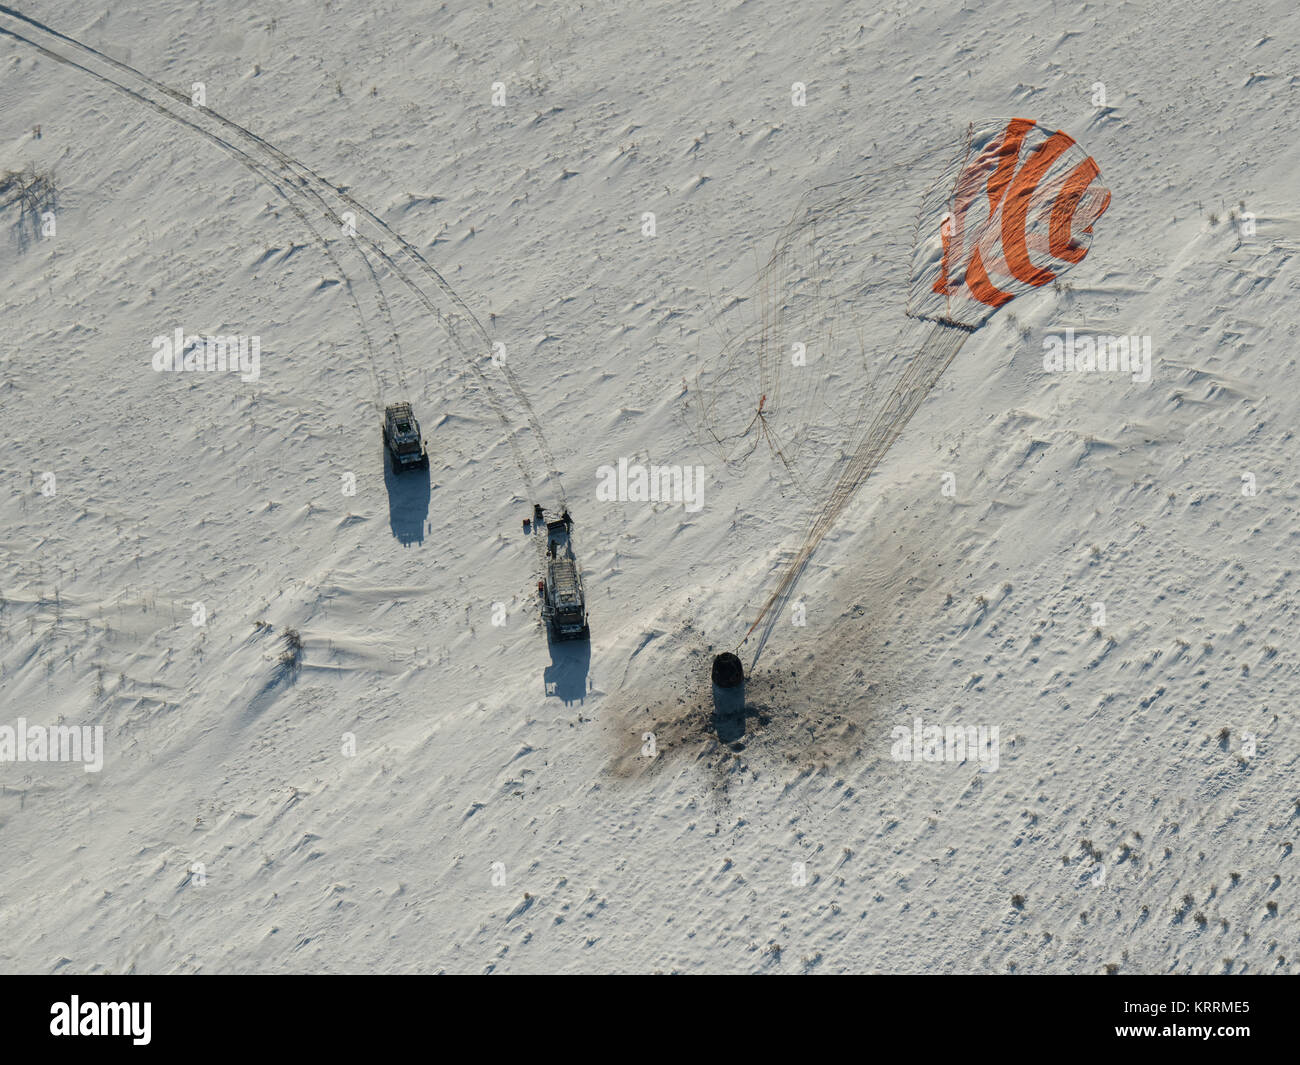 The NASA International Space Station Expedition 53 Soyu MS-05 spacecraft lands in the sand December 14, 2017 in - Stock Image